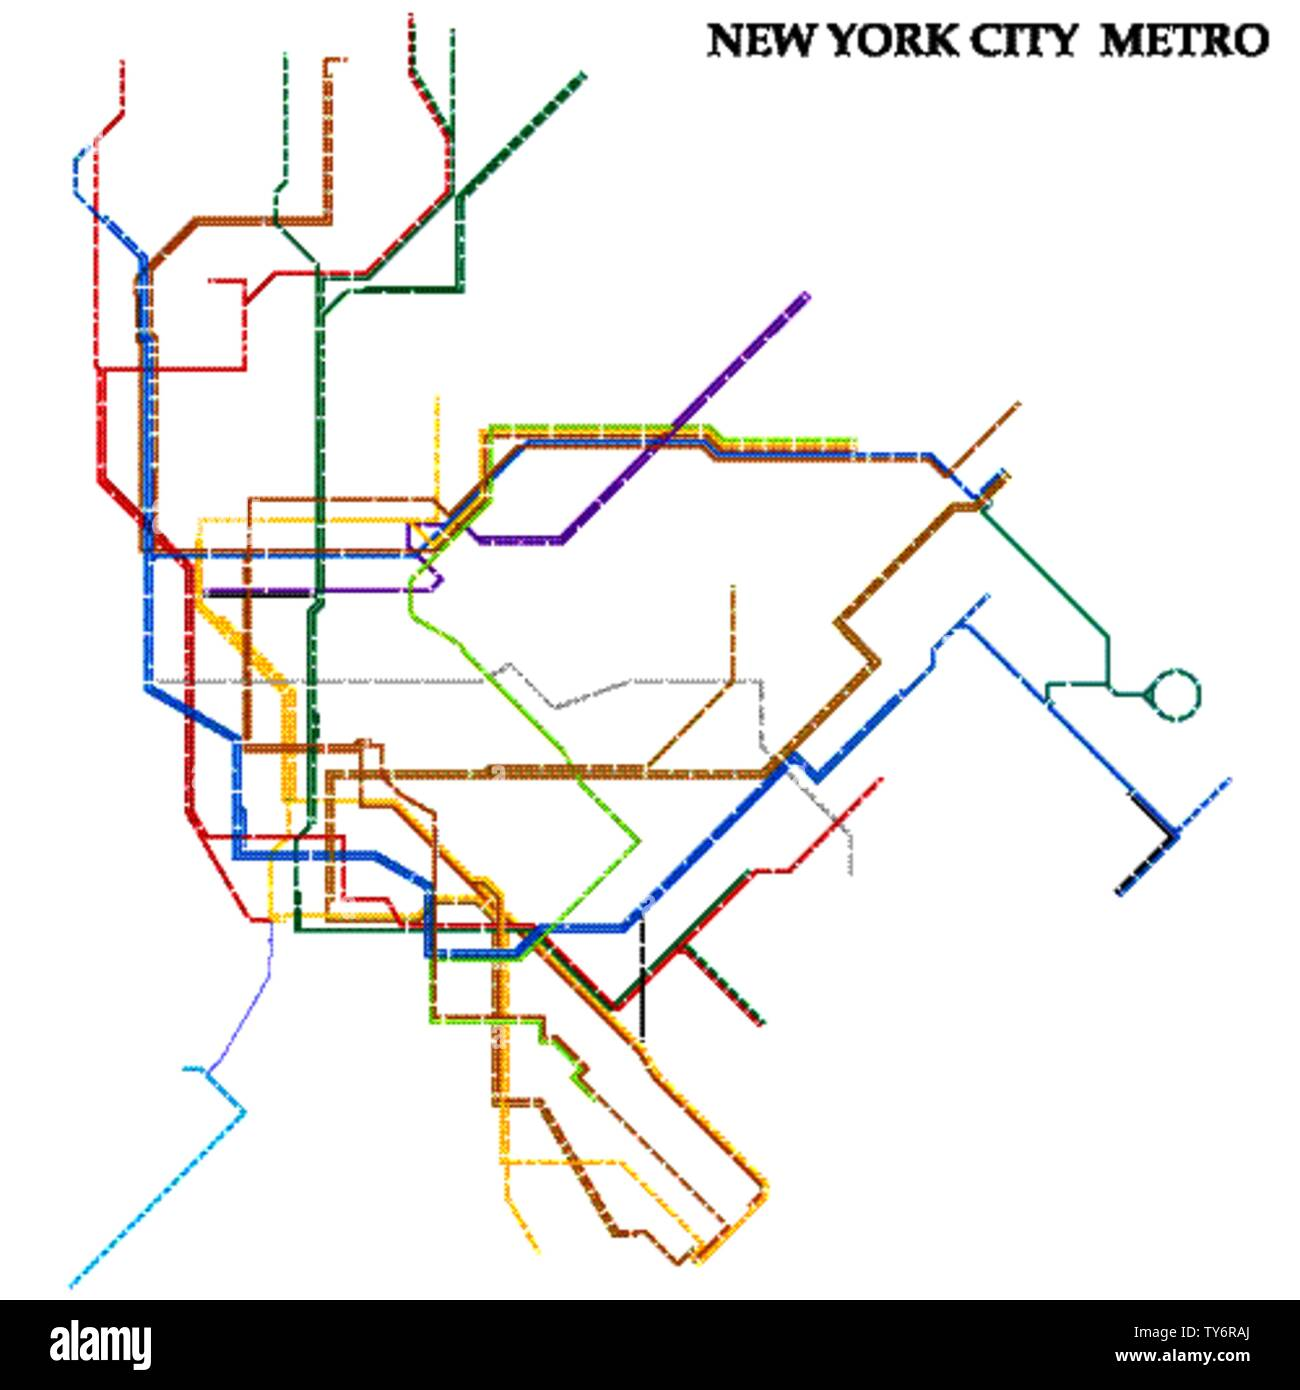 Map of the New York City metro, Subway, Template of city transportation scheme for underground road. Stock Vector